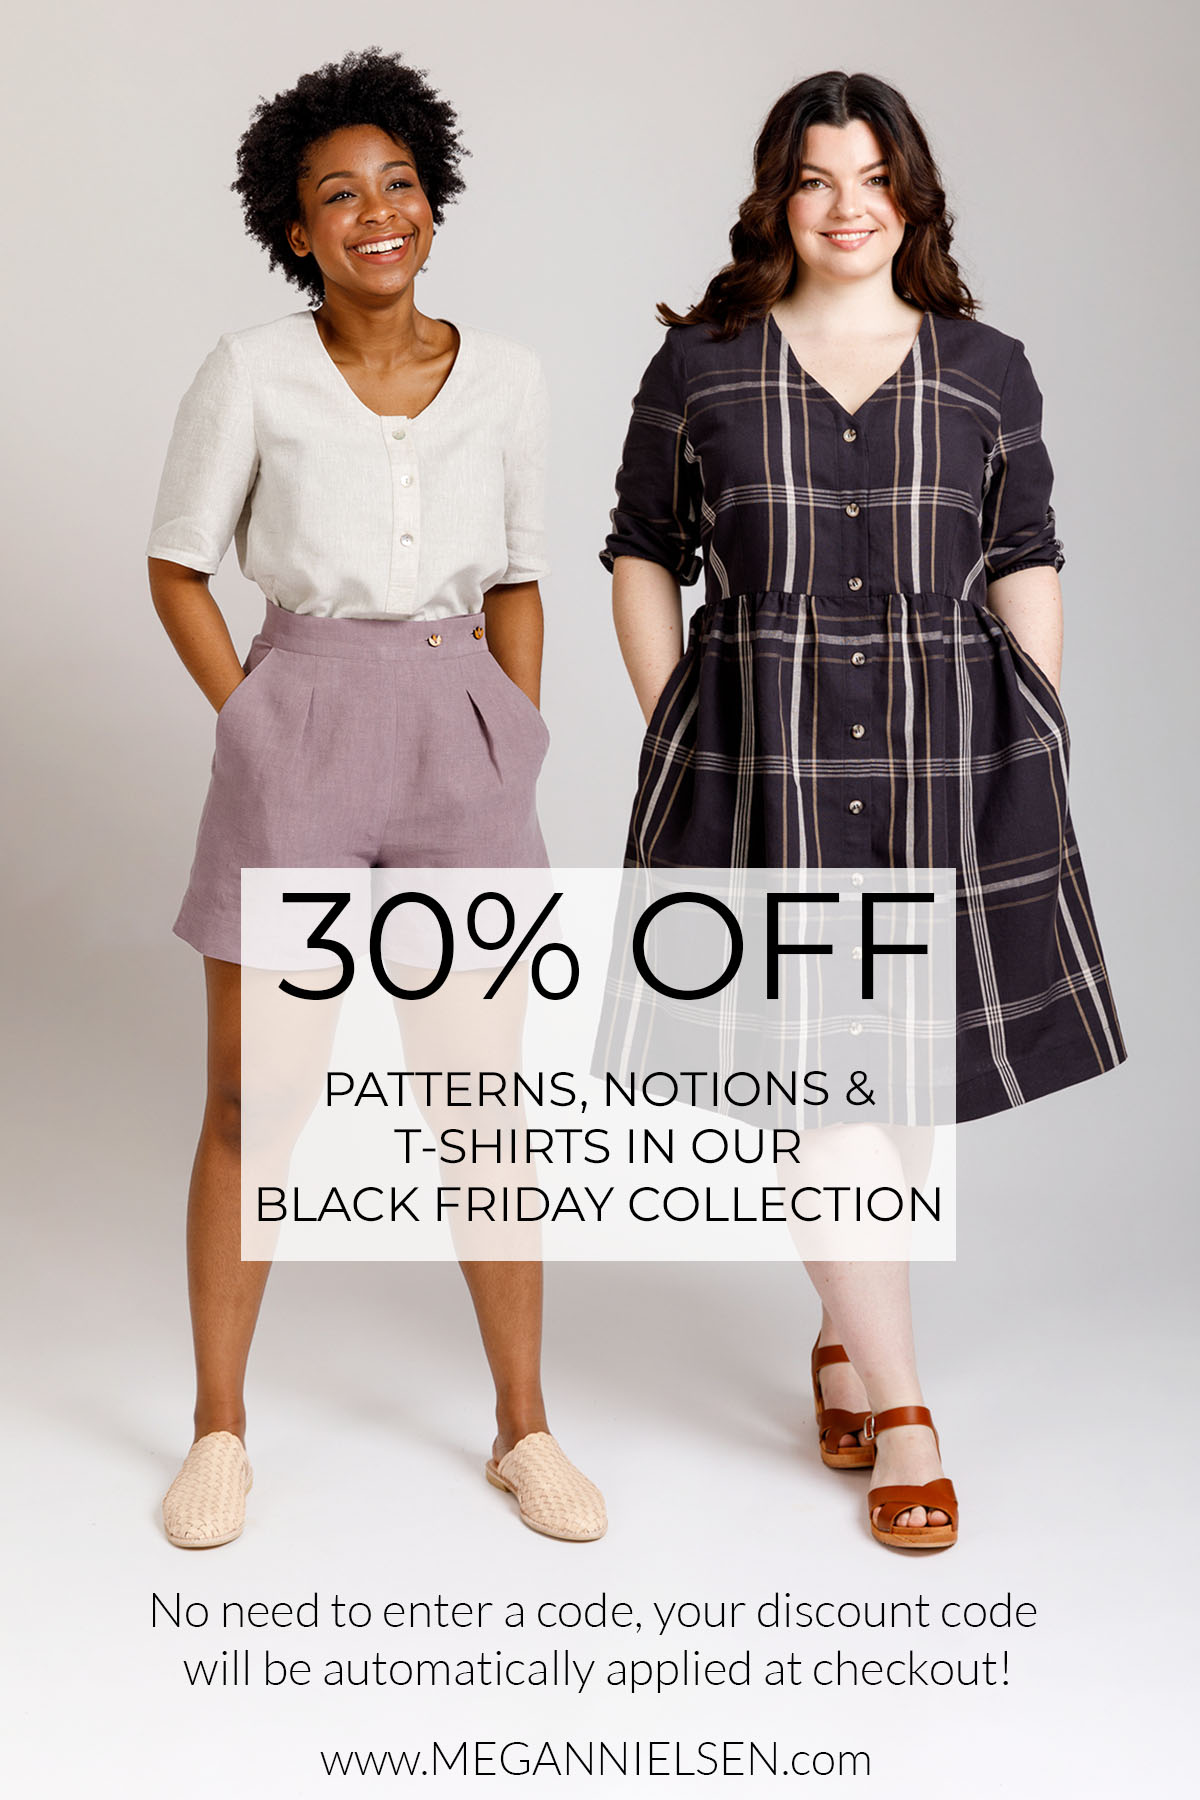 30% off everything in the Black Friday Collection